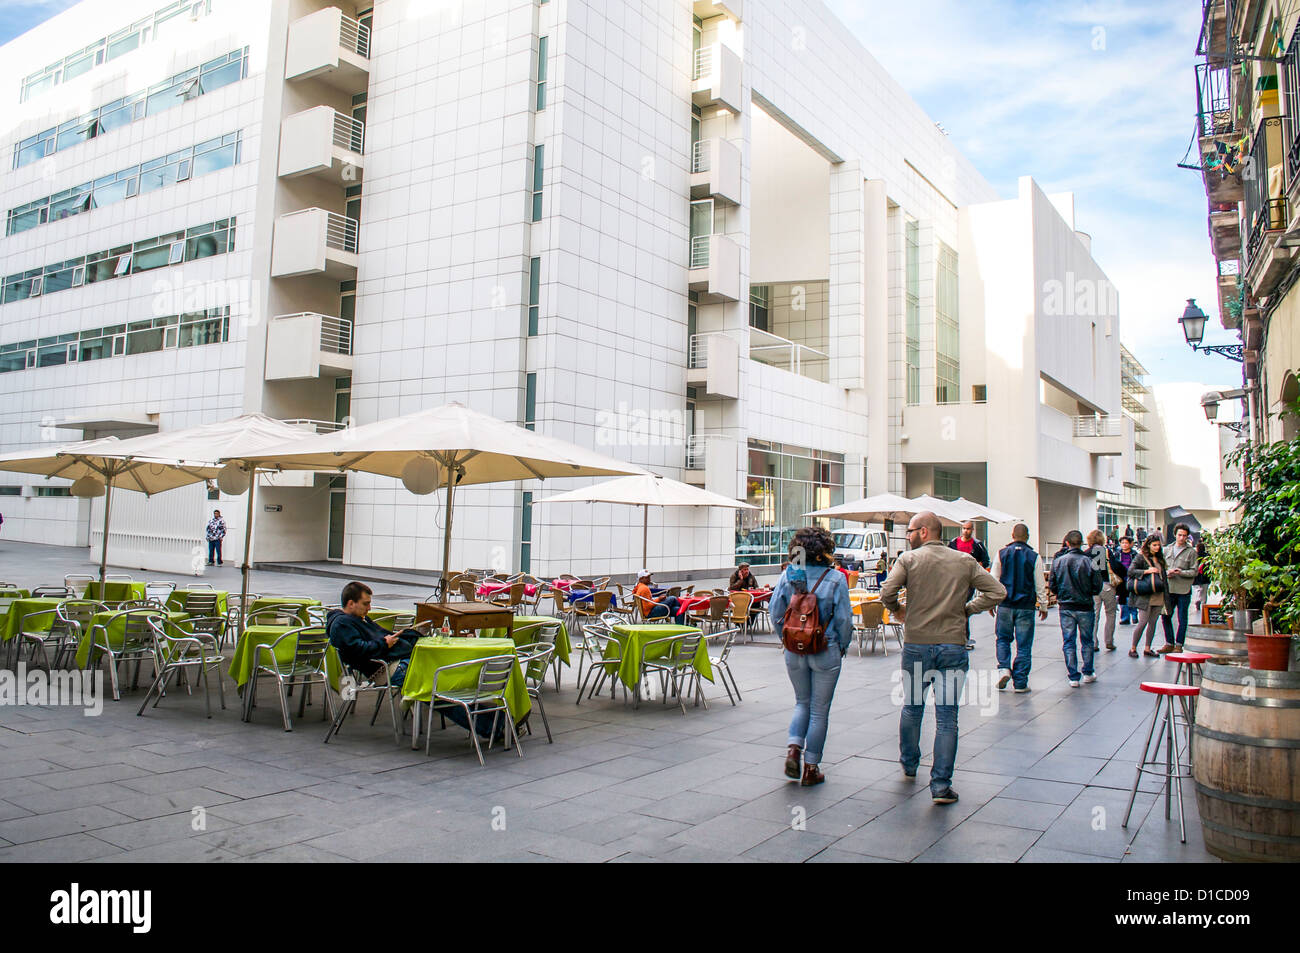 Sidewalk cafes are conveniently located outside the front entry of MACBA -- the museum of contemporary art in Barcelona, - Stock Image